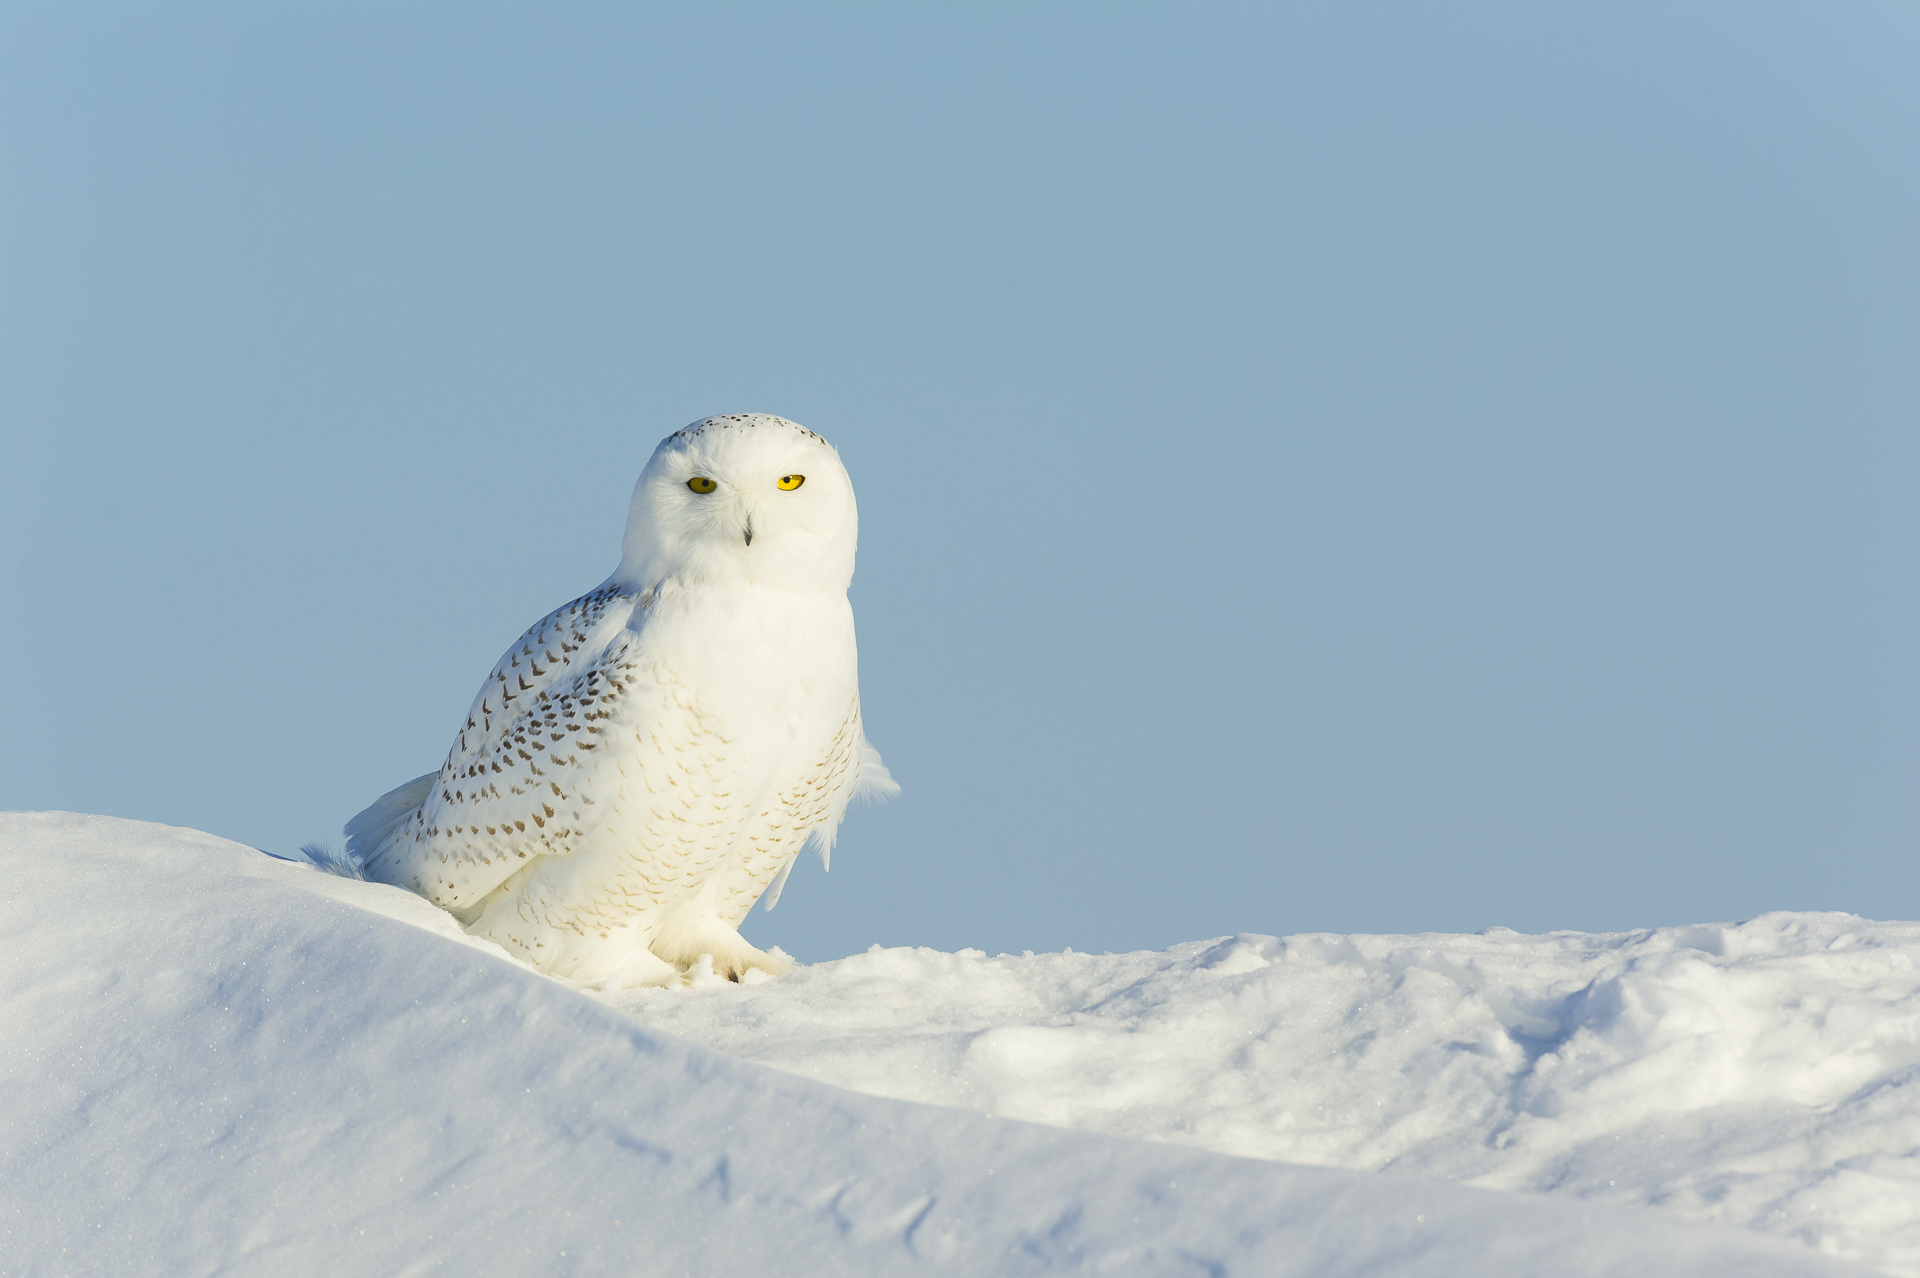 Lone hunter: snowy owl